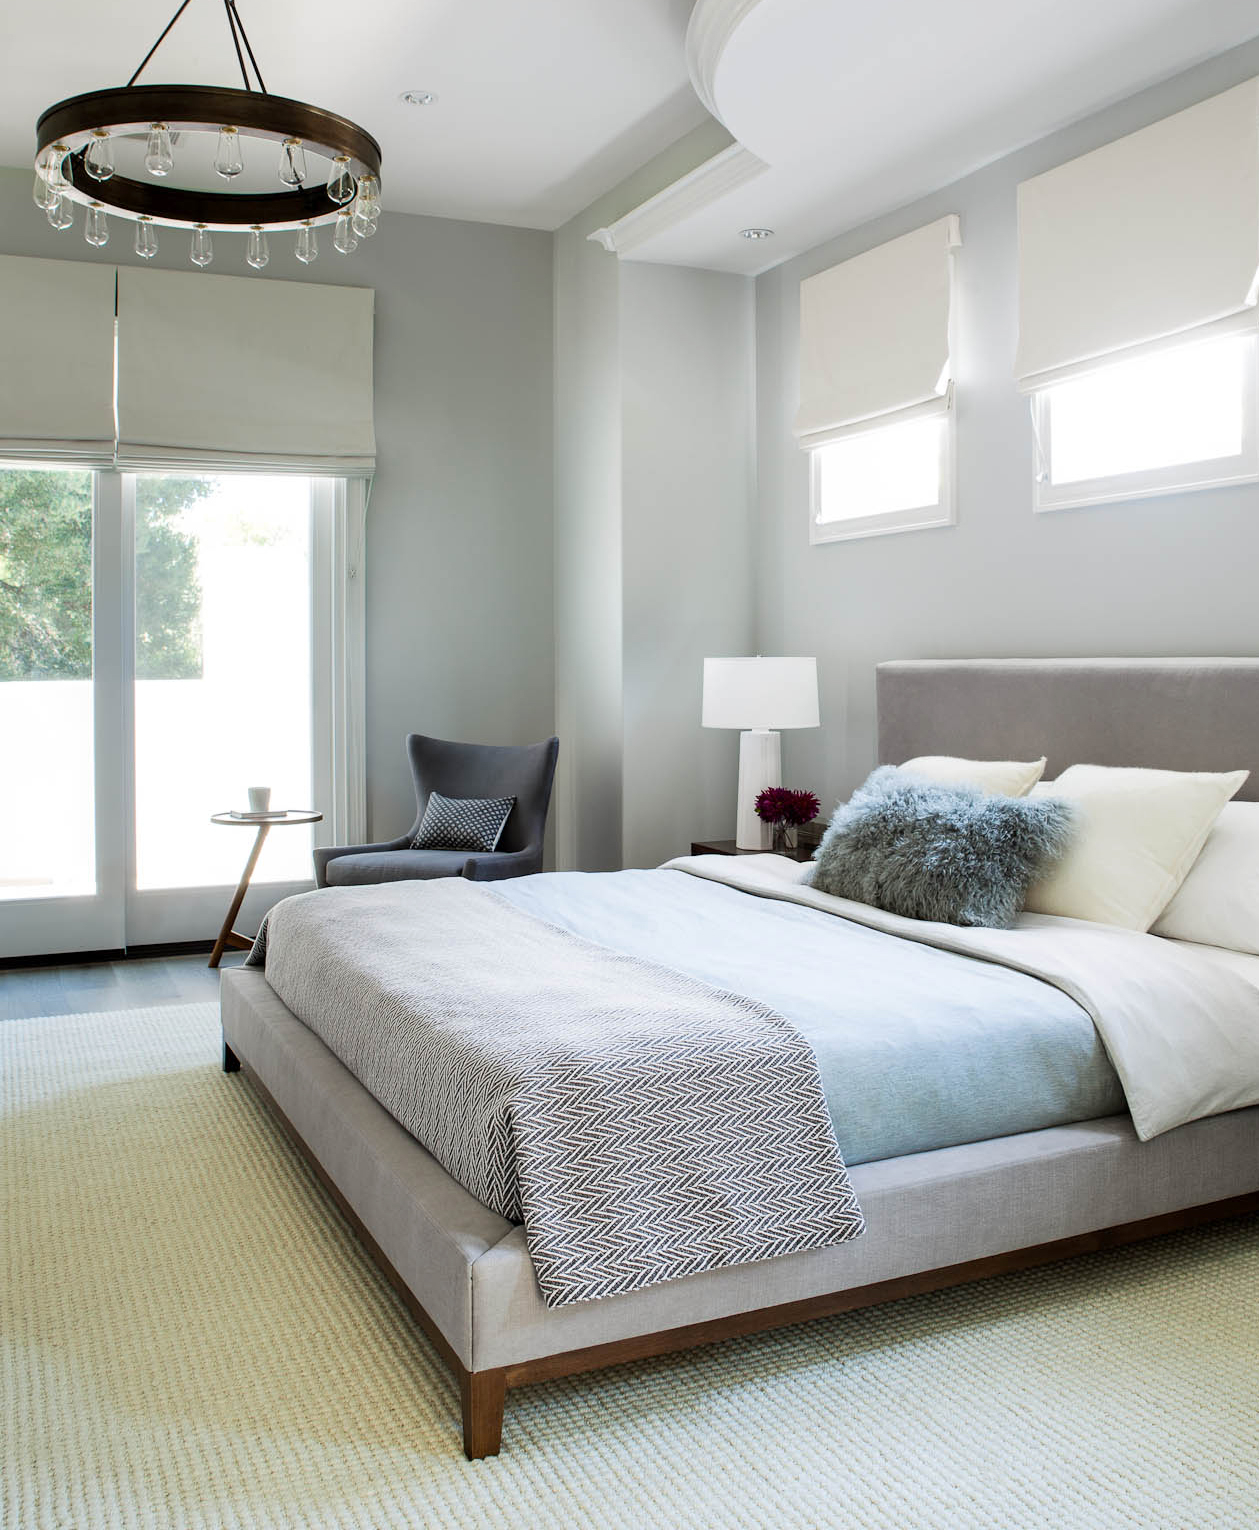 Bedroom Ideas 52 Modern Design Ideas For Your Bedroom The Luxpad throughout 12 Clever Concepts of How to Makeover Ideas For Modern Bedrooms